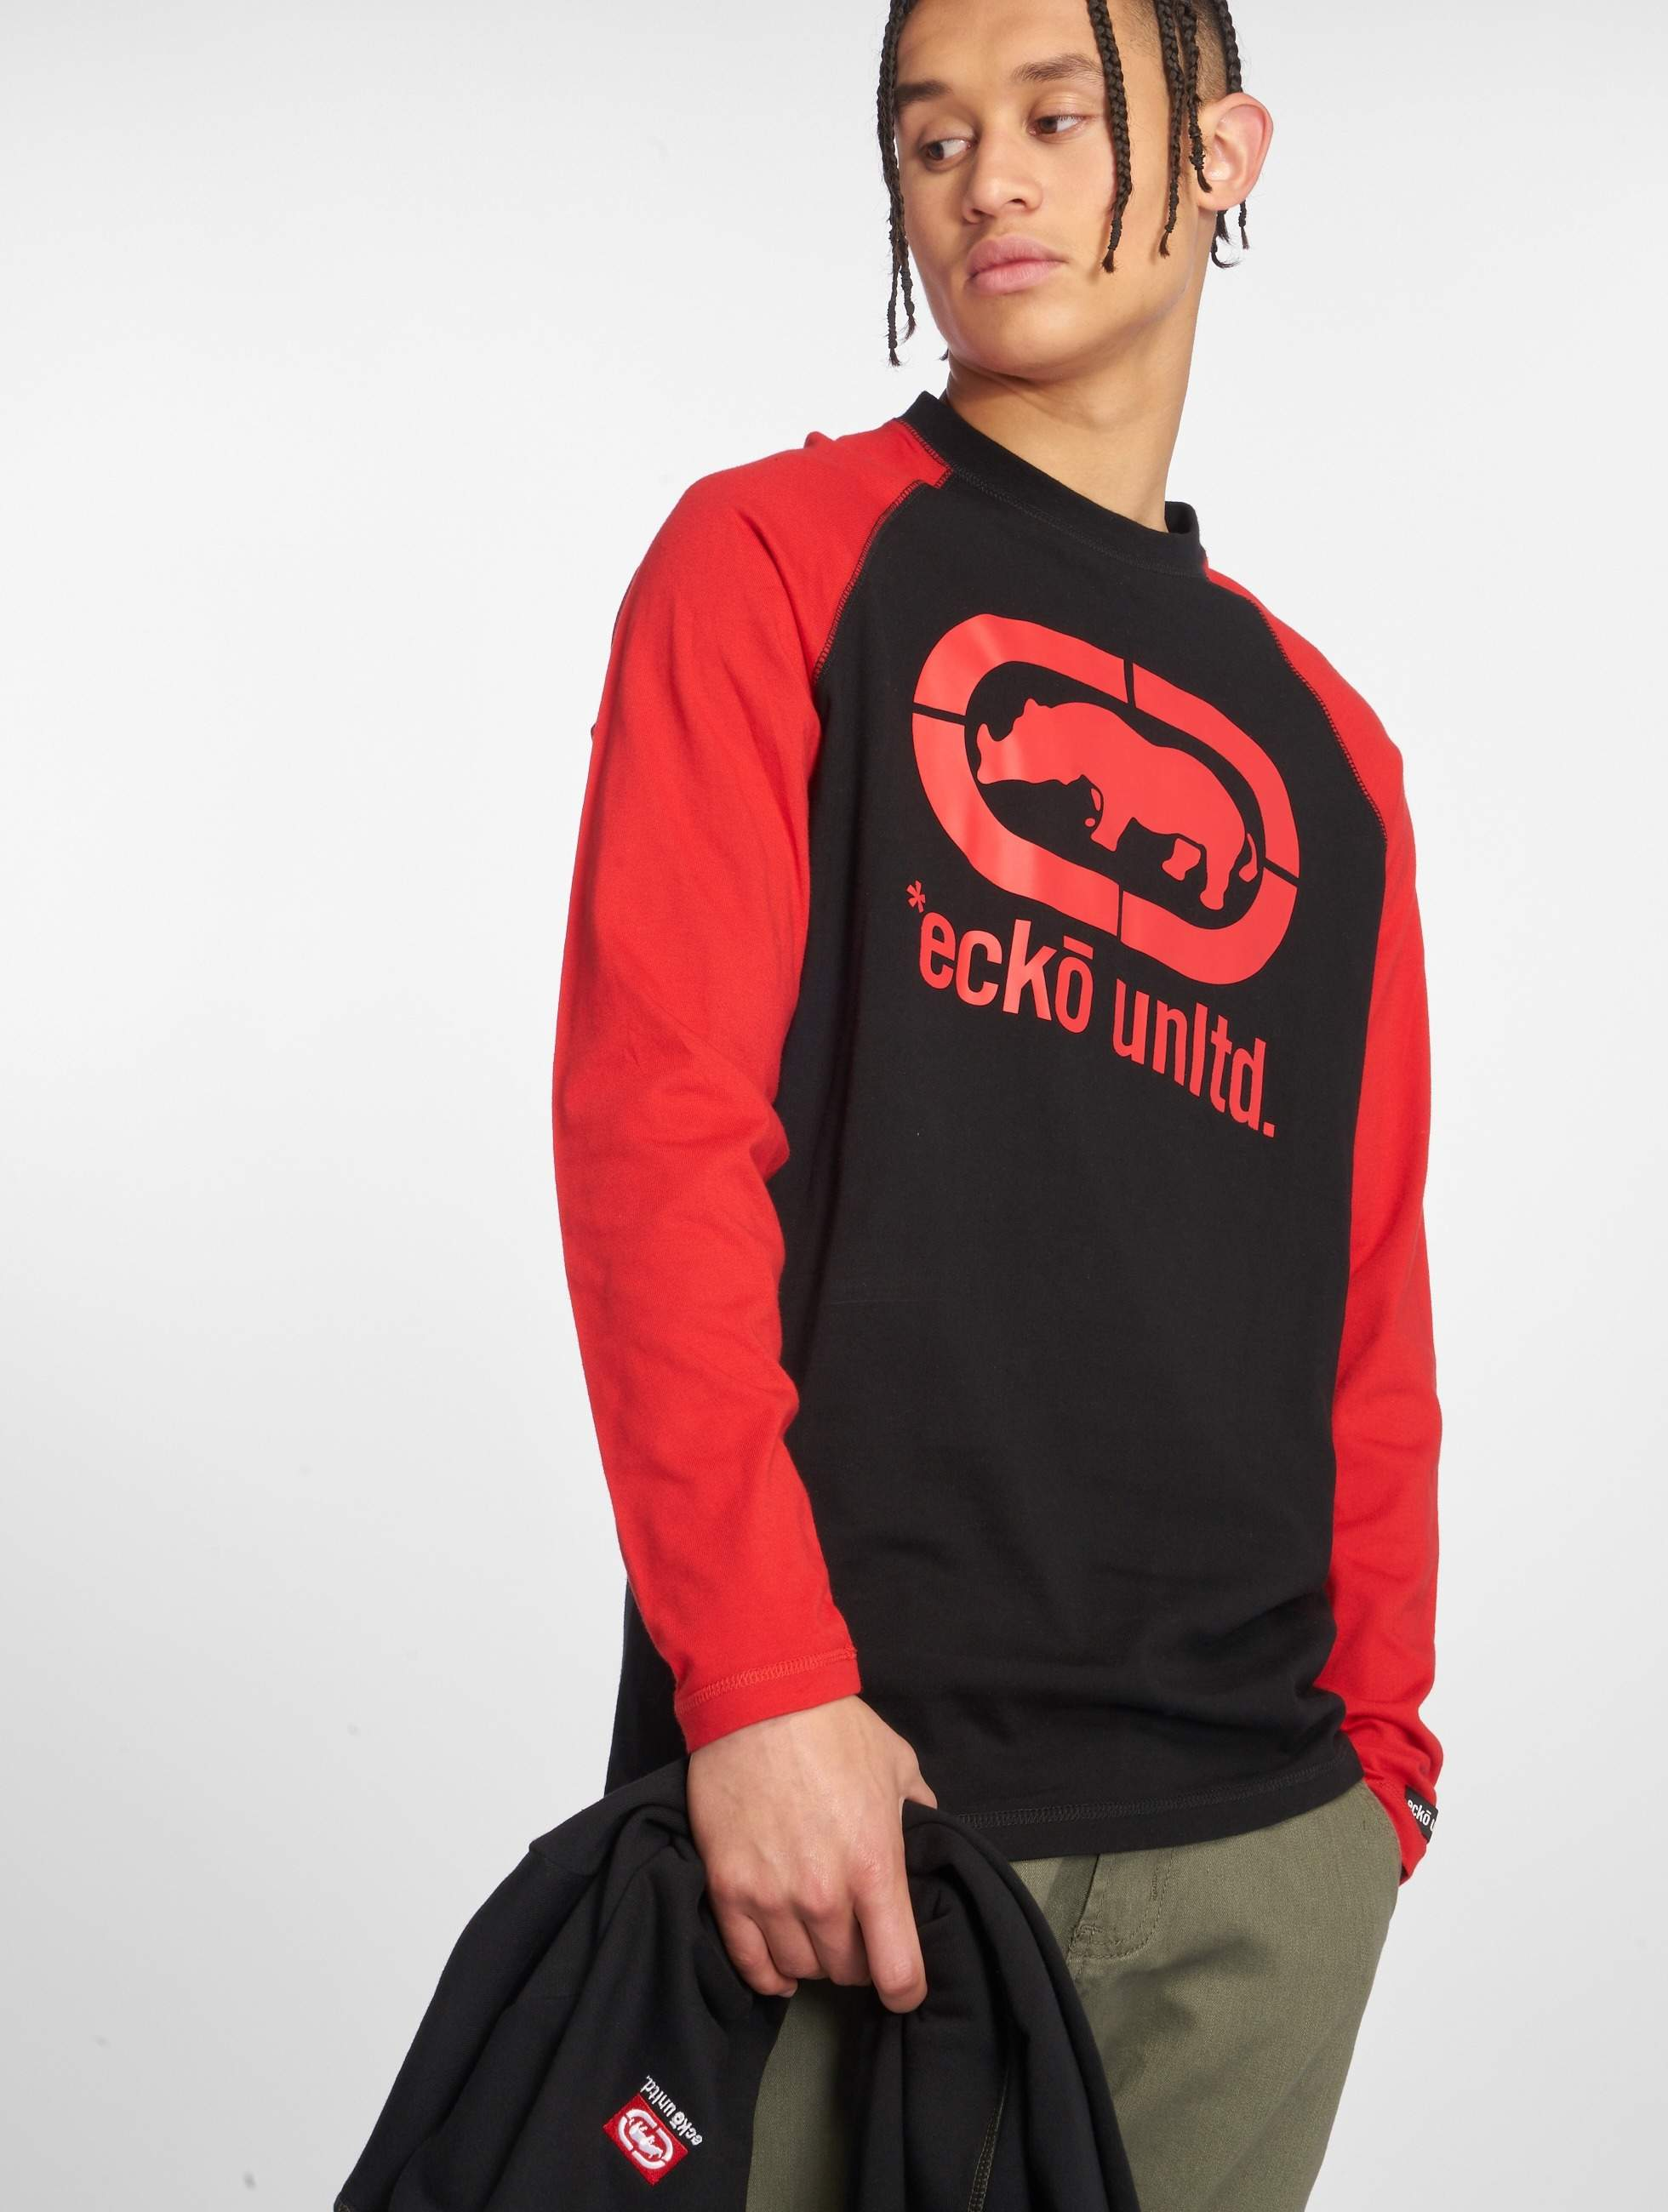 Ecko Unltd. / Longsleeve East Buddy in red 3XL